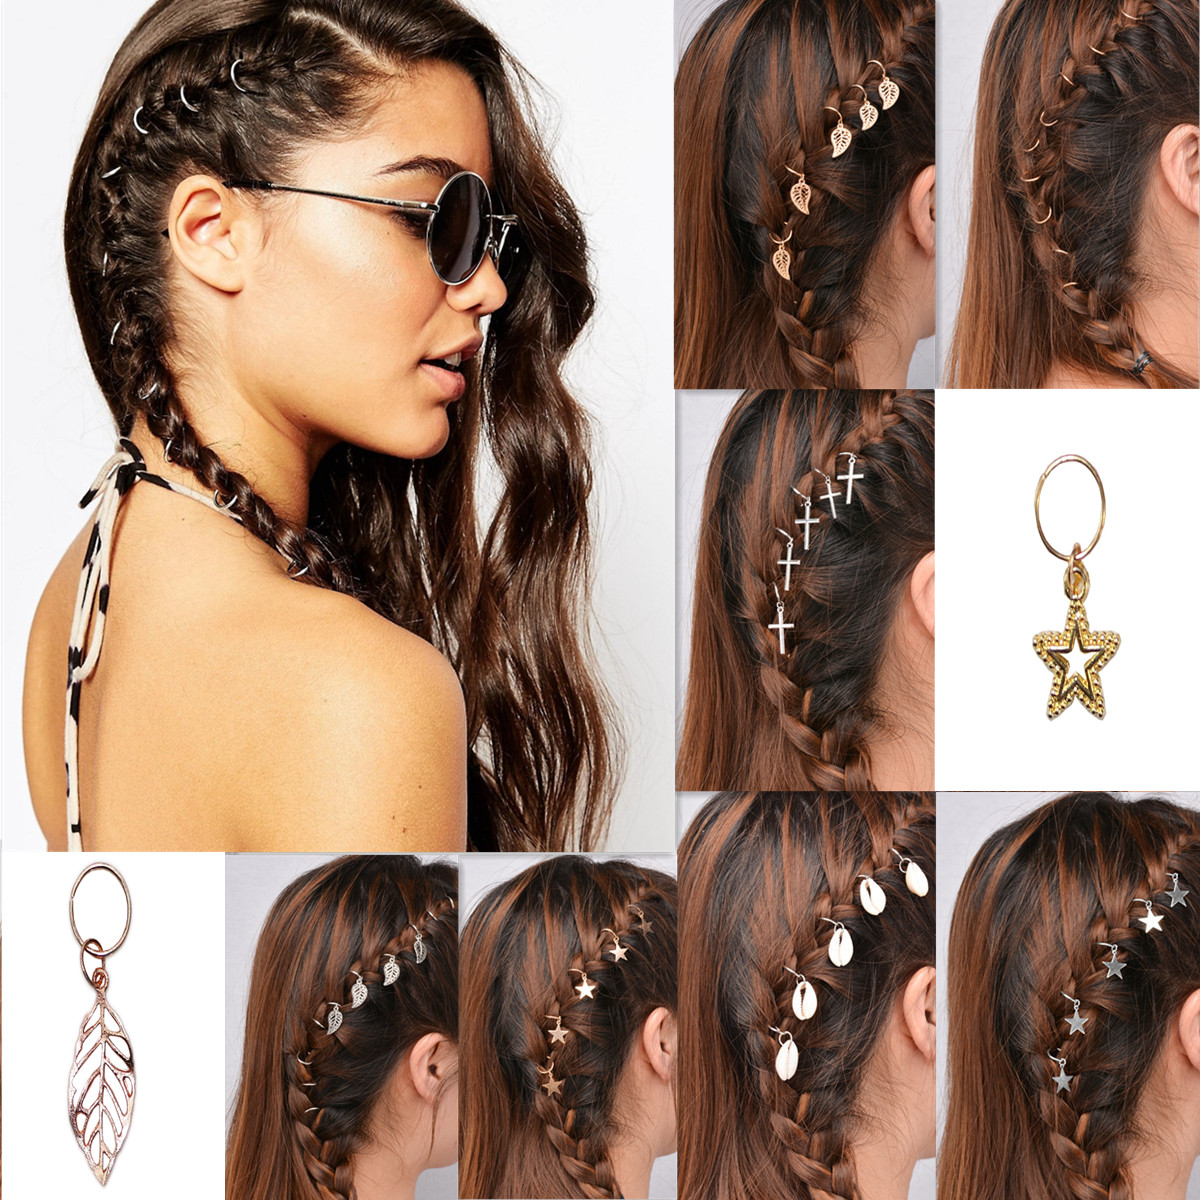 100pcs//set Hair Rings Braid Rings Hair Loop Clips Hair Accessories DIY N X